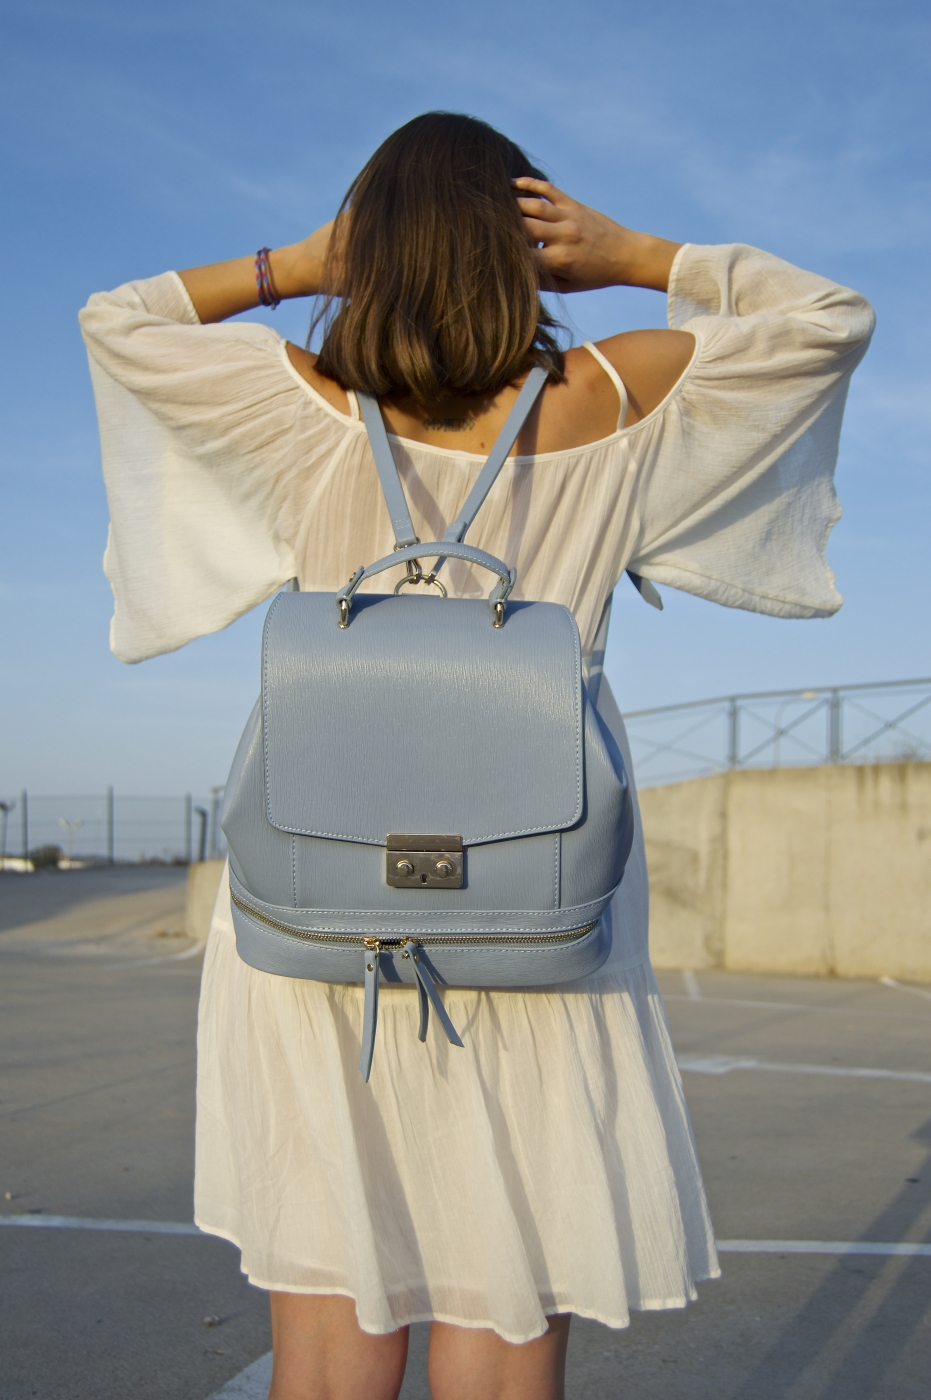 lara-vazquez-mad-lula-style-fashion-blog-moda-details-bag-blue-sky